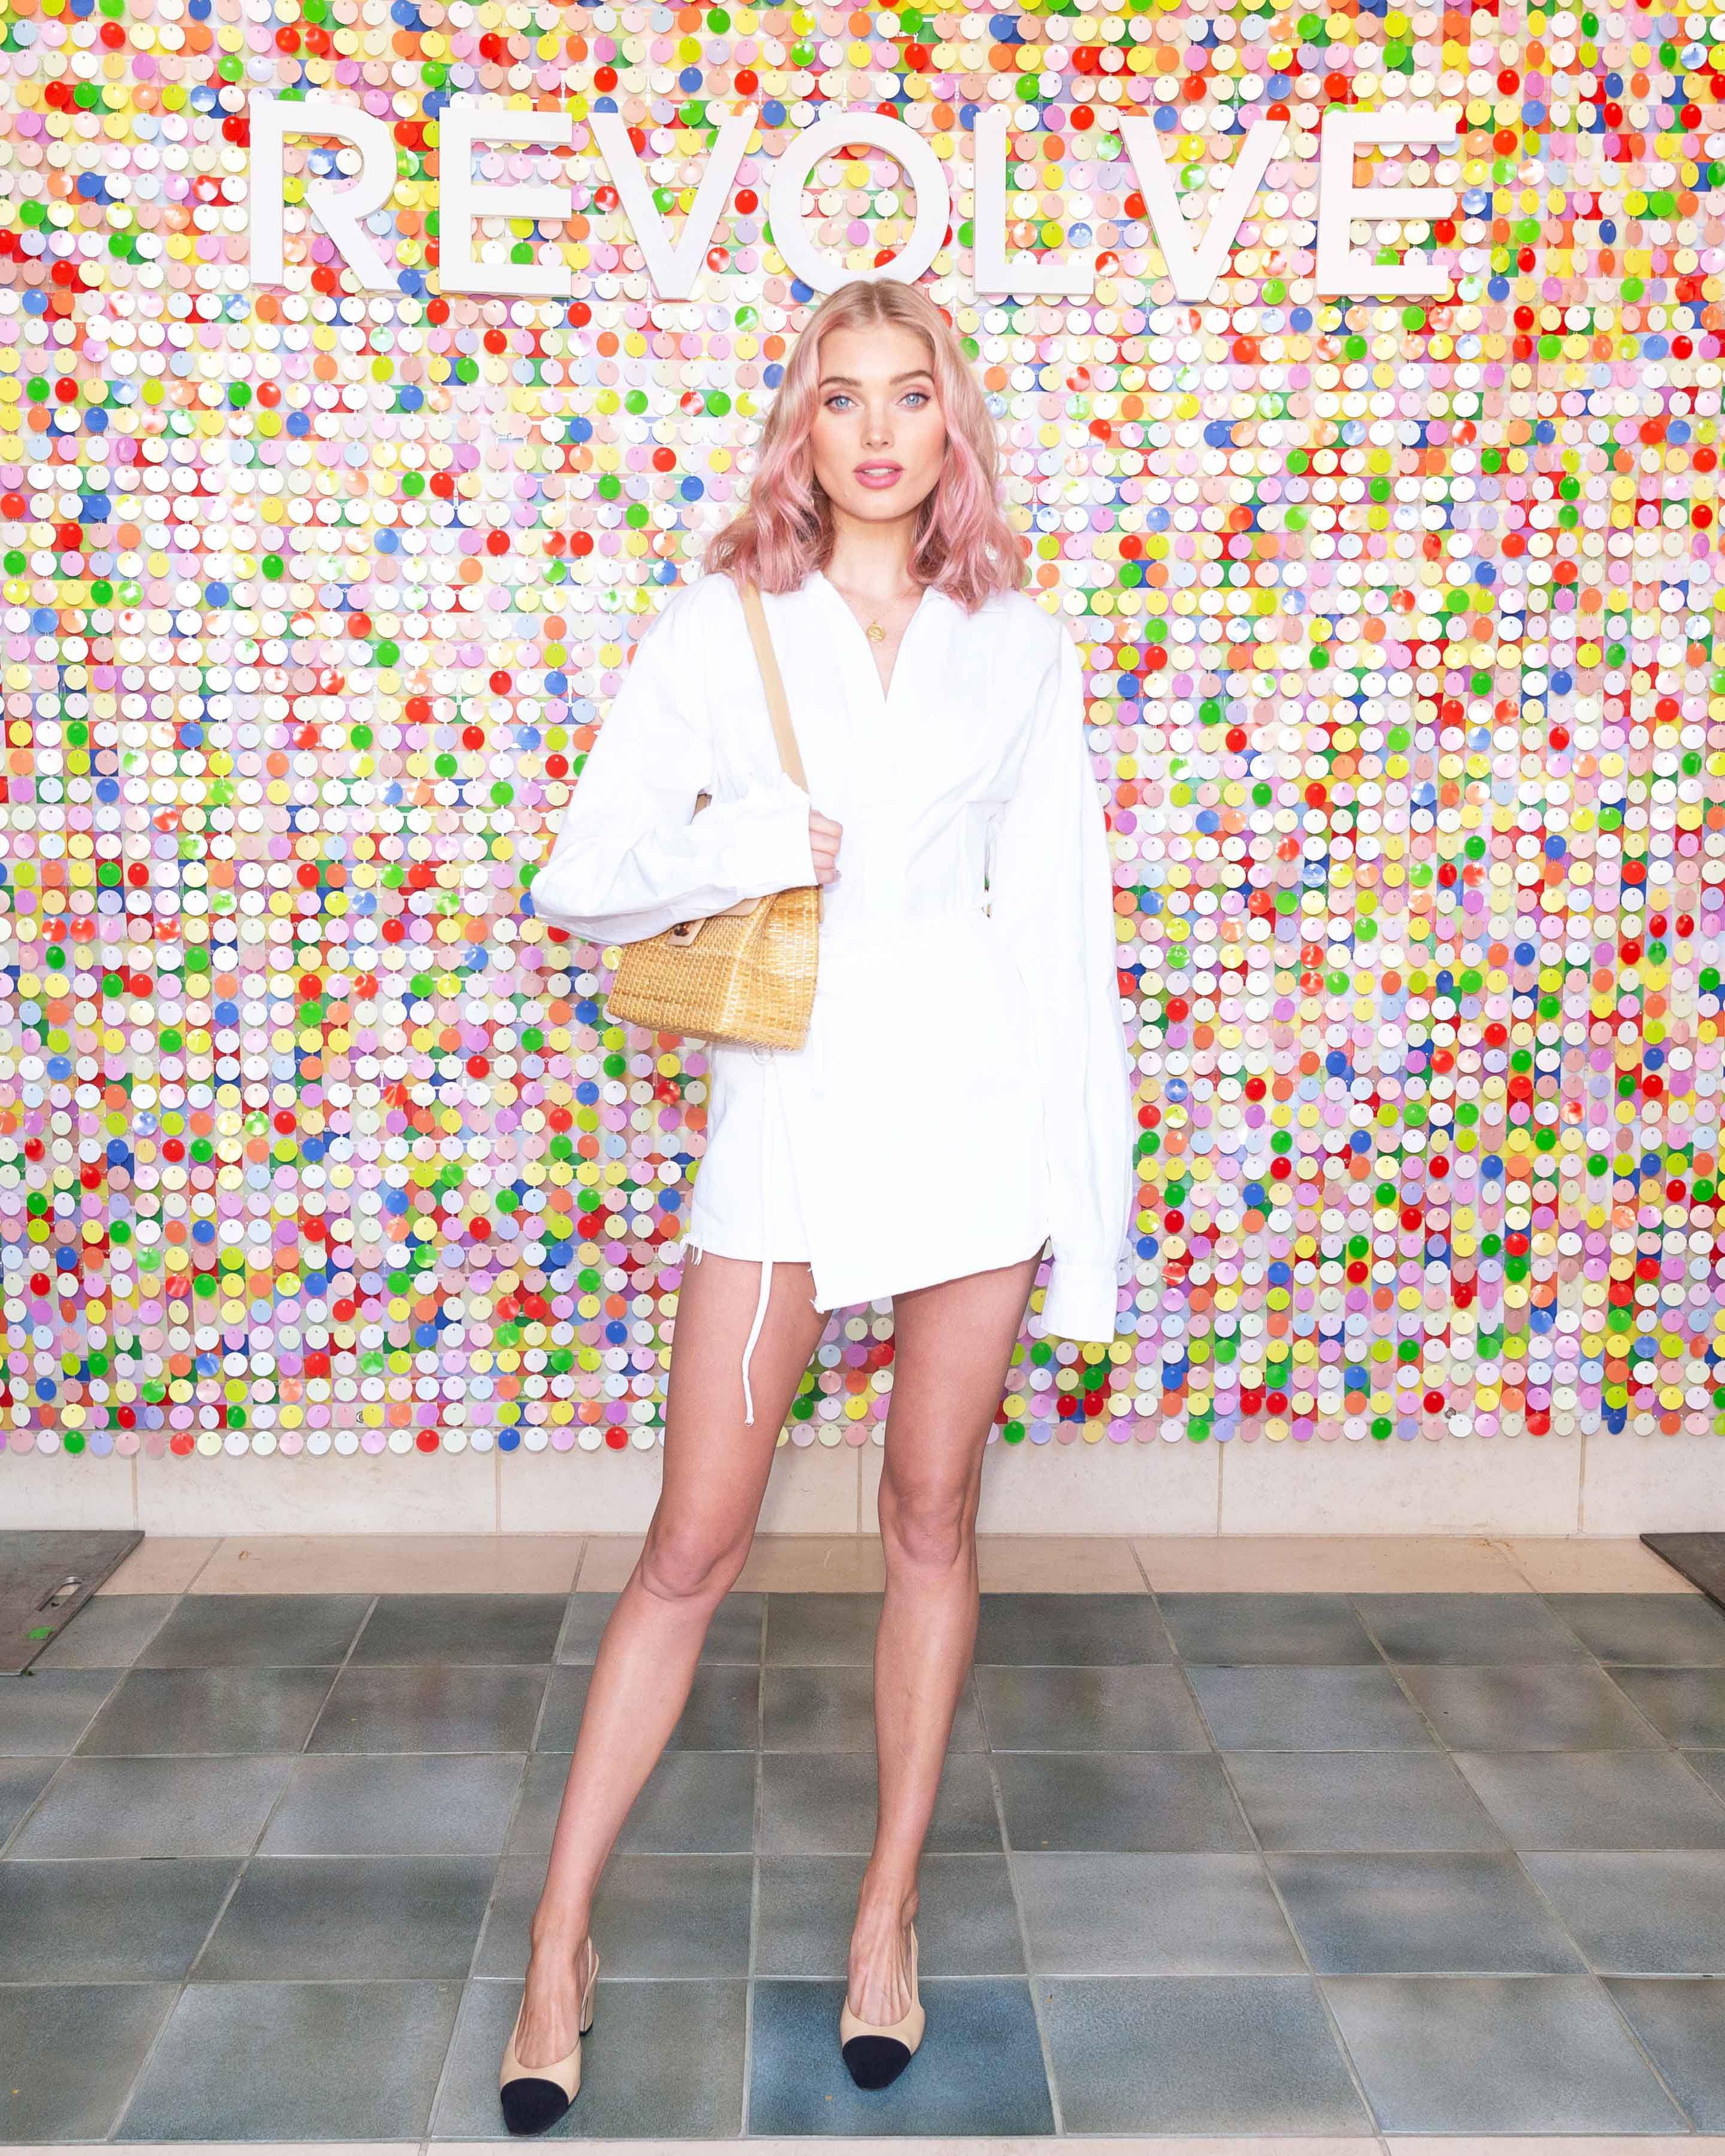 ad01c6ad19 Elsa Hosk - In an LPA top and GRLFRND skirt at Revolve Festival. The hair  and dress are just perfection.